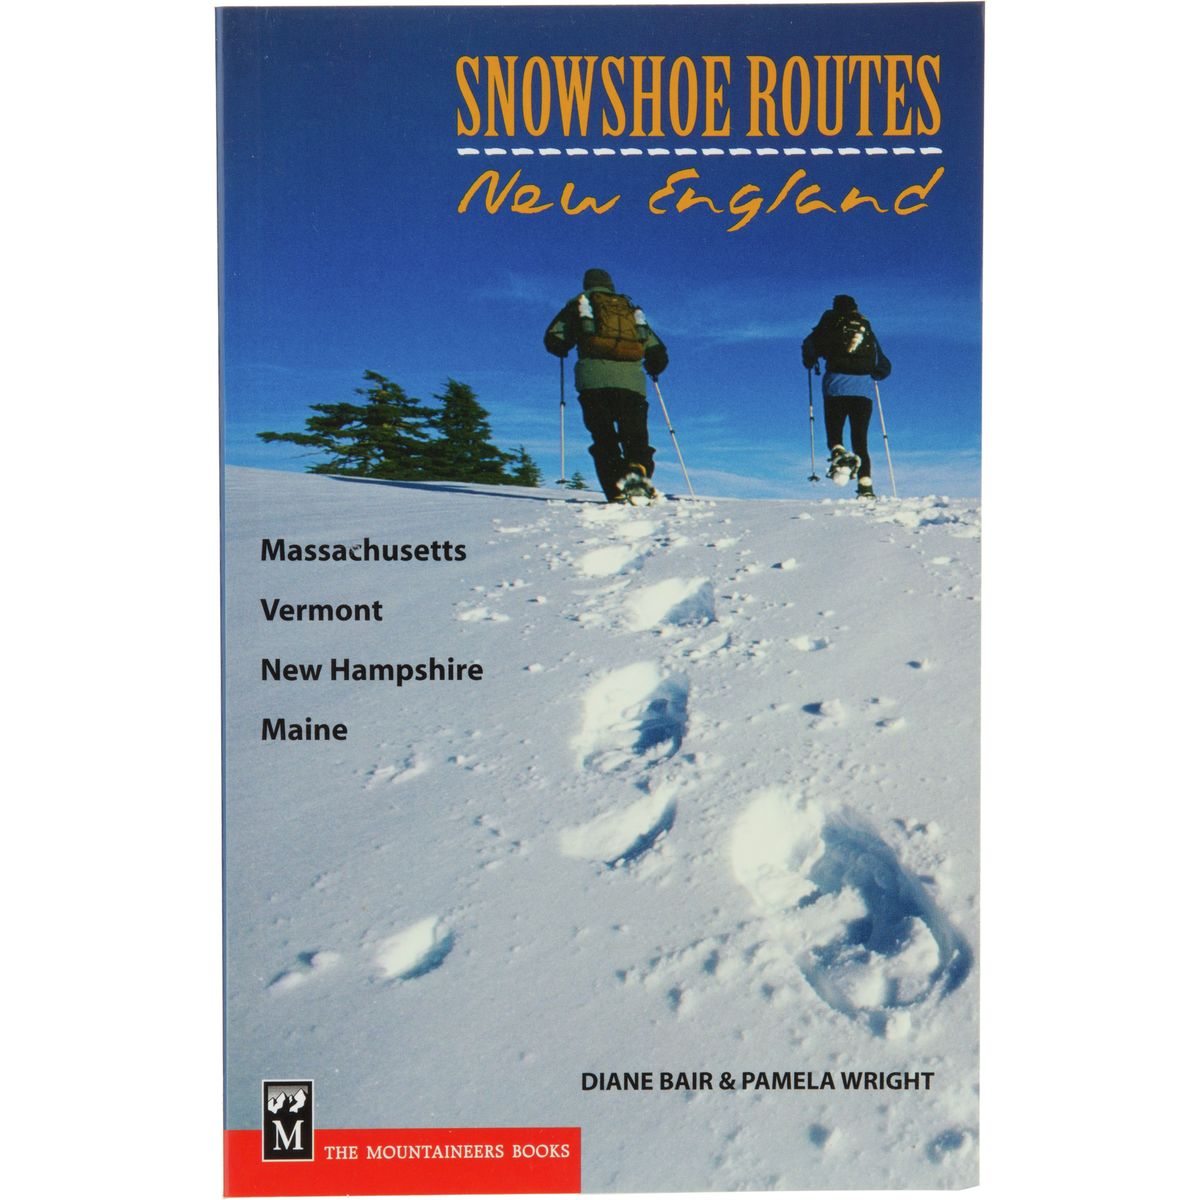 The Mountaineers Books Snowshoe Routes - New England